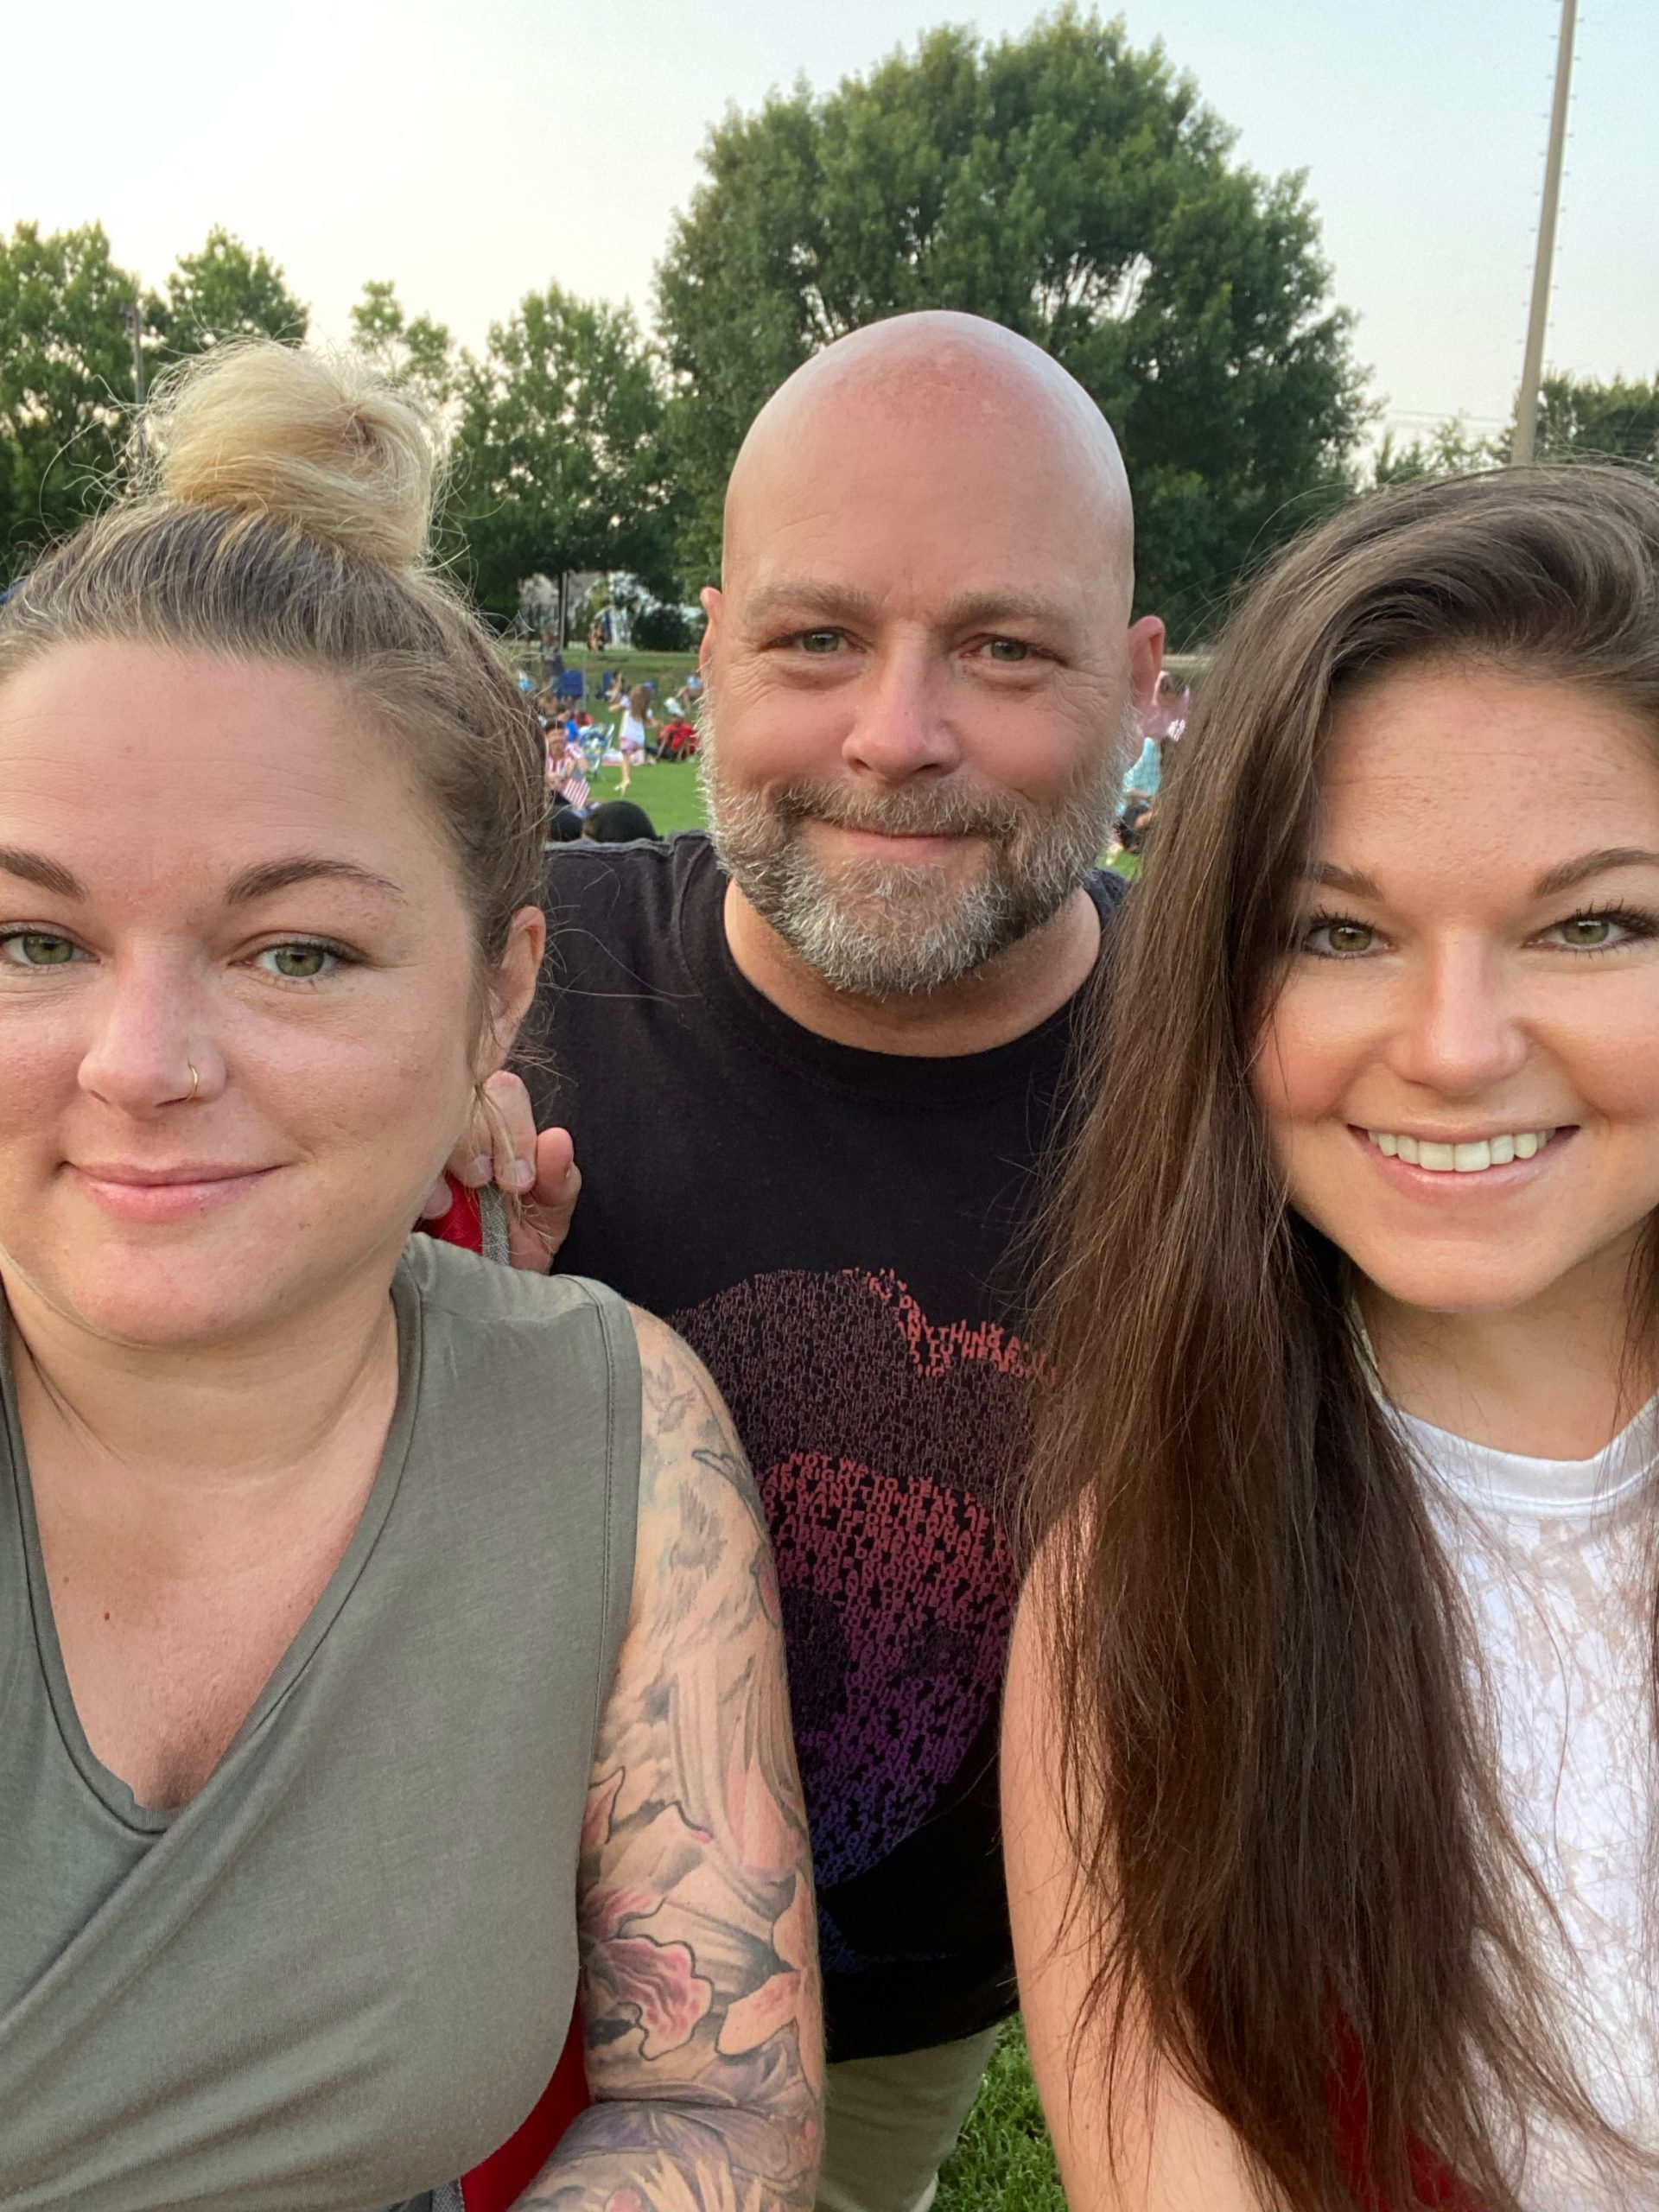 Dad, Sommer and Erika selfie while watching fireworks